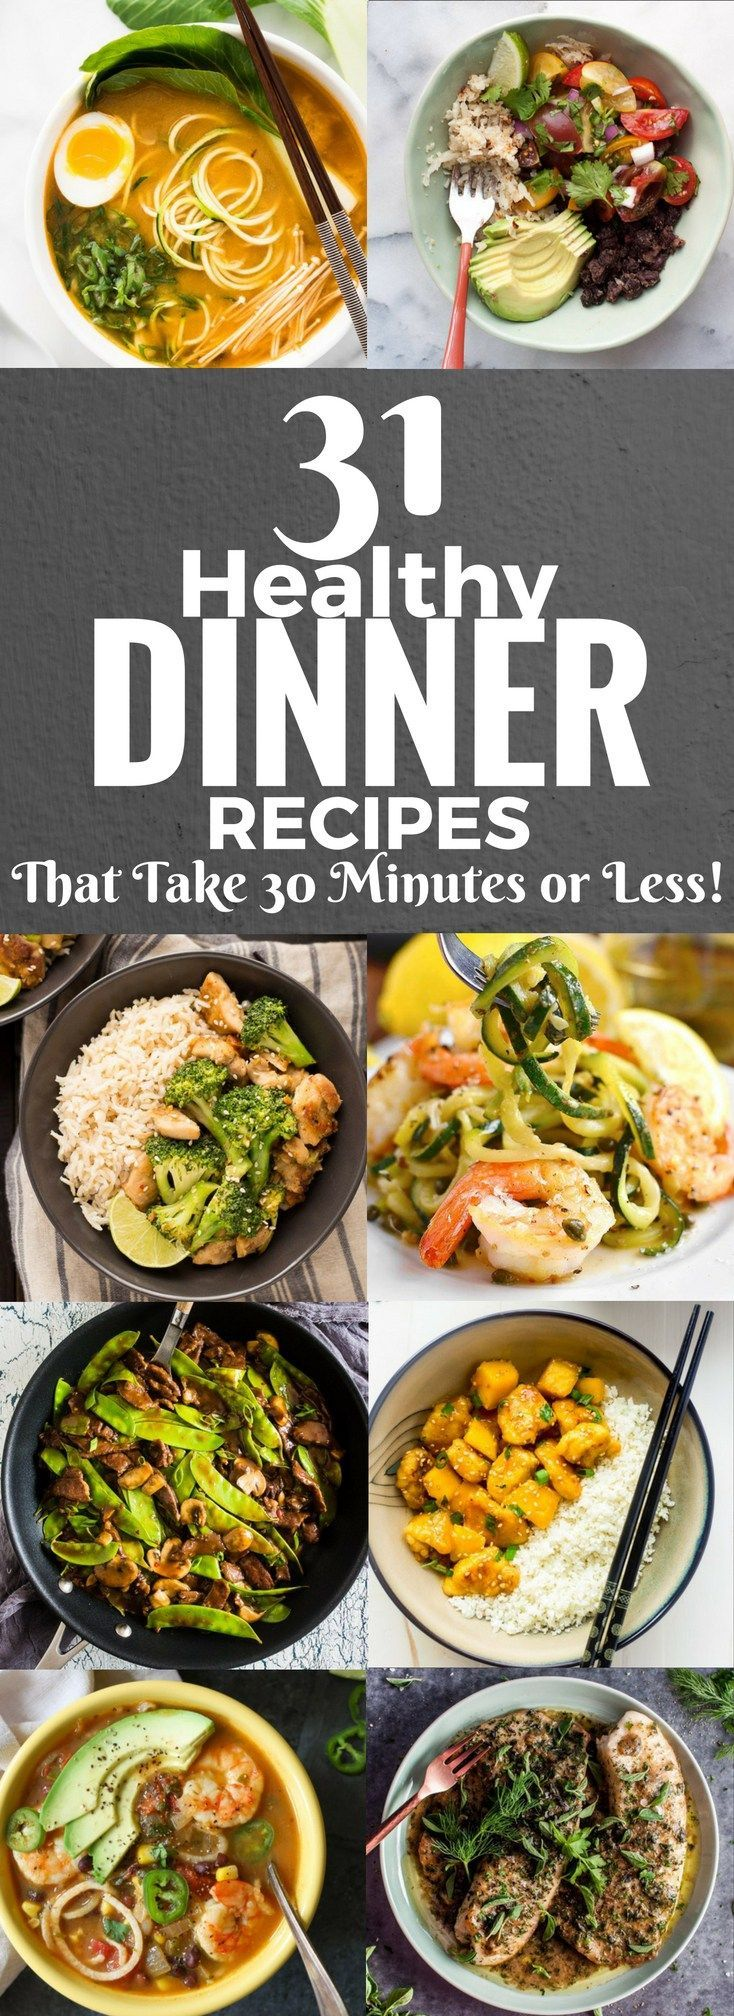 Easy and healthy delicious dinner recipes